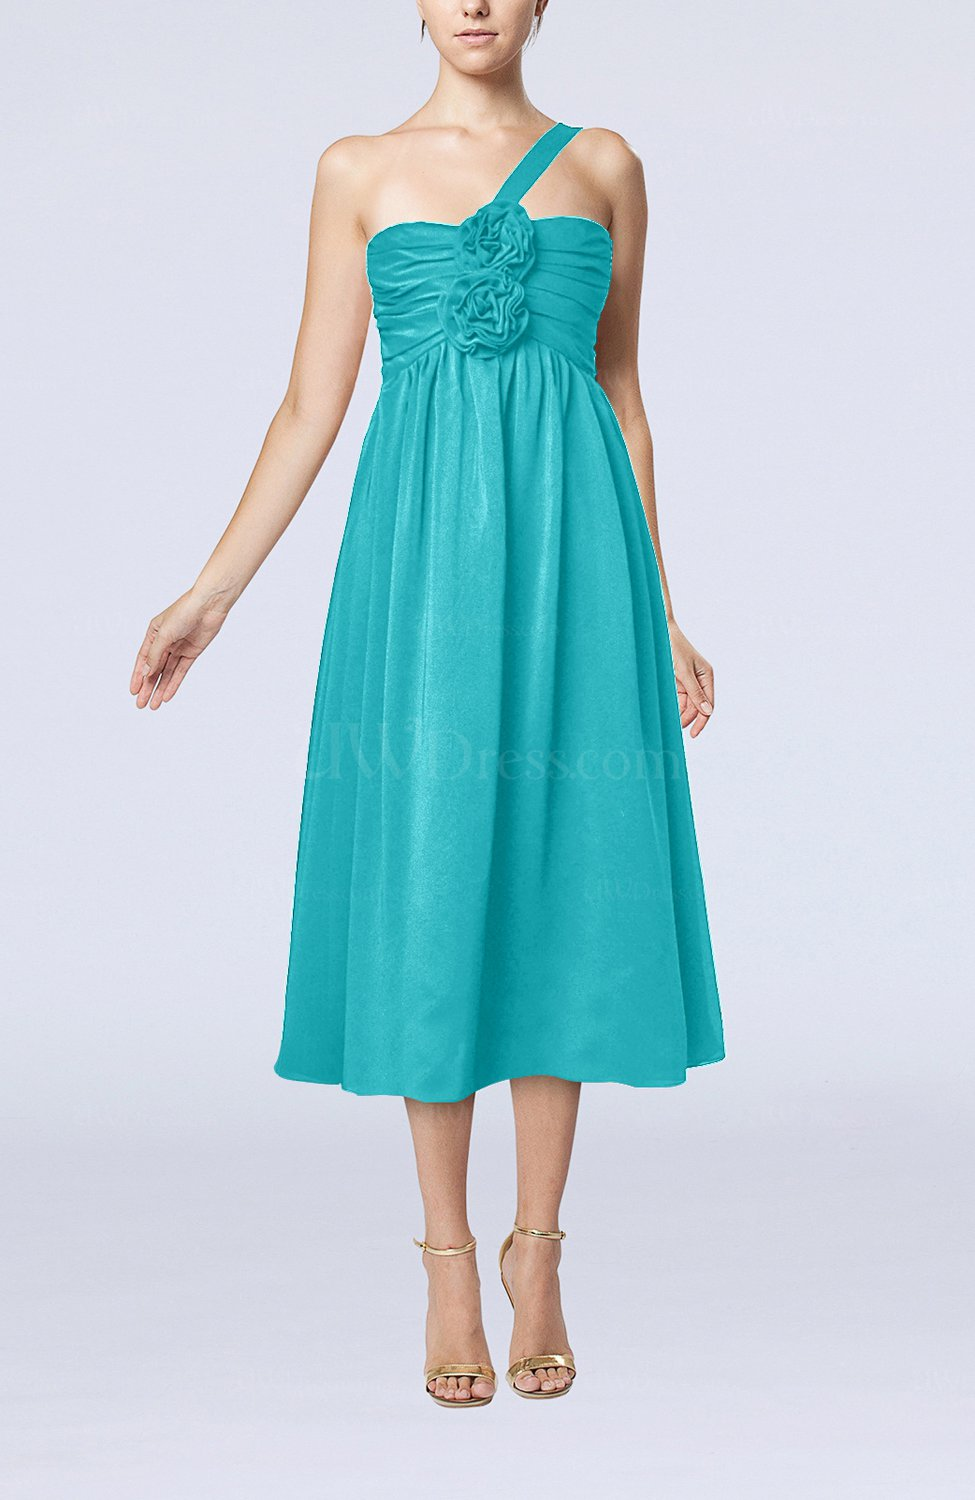 teal casual one shoulder sleeveless chiffon pleated